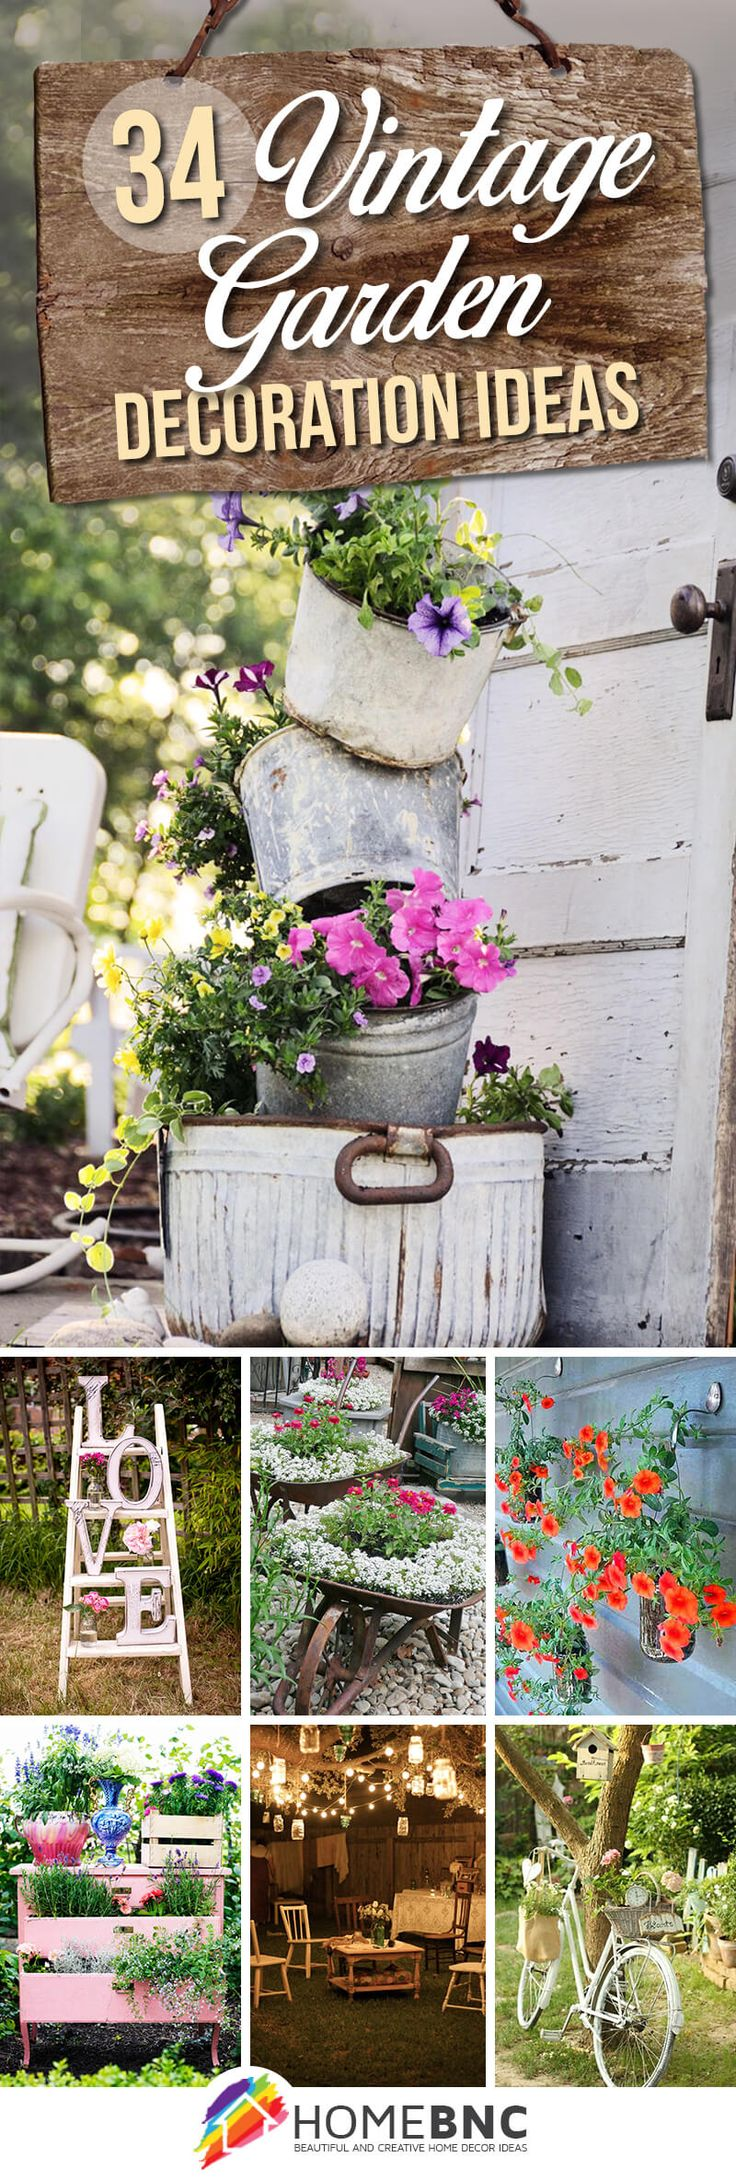 Garden Decor Ideas astonishing garden decor ideas garden decor ideas with patio structure 34 Vintage Garden Decor Ideas To Give Your Outdoor Space Vintage Flair